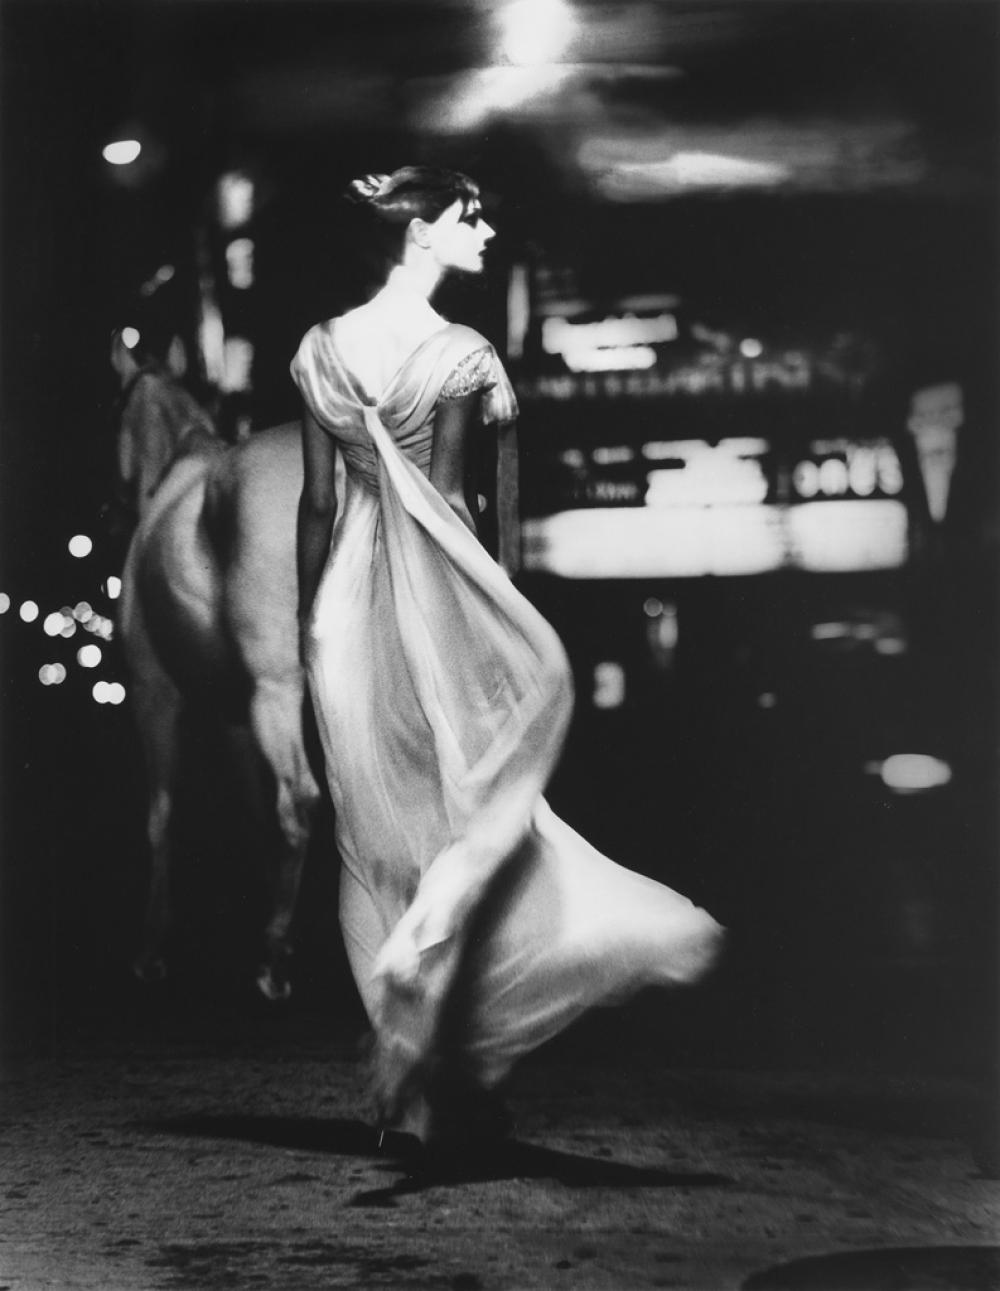 WILLIAM EGGLESTON; SALLY MANN; WOLFGANG TILLMANS; LILLIAN BASSMAN, et alia BAM [Brooklyn Academy of Music] Portfolio II.